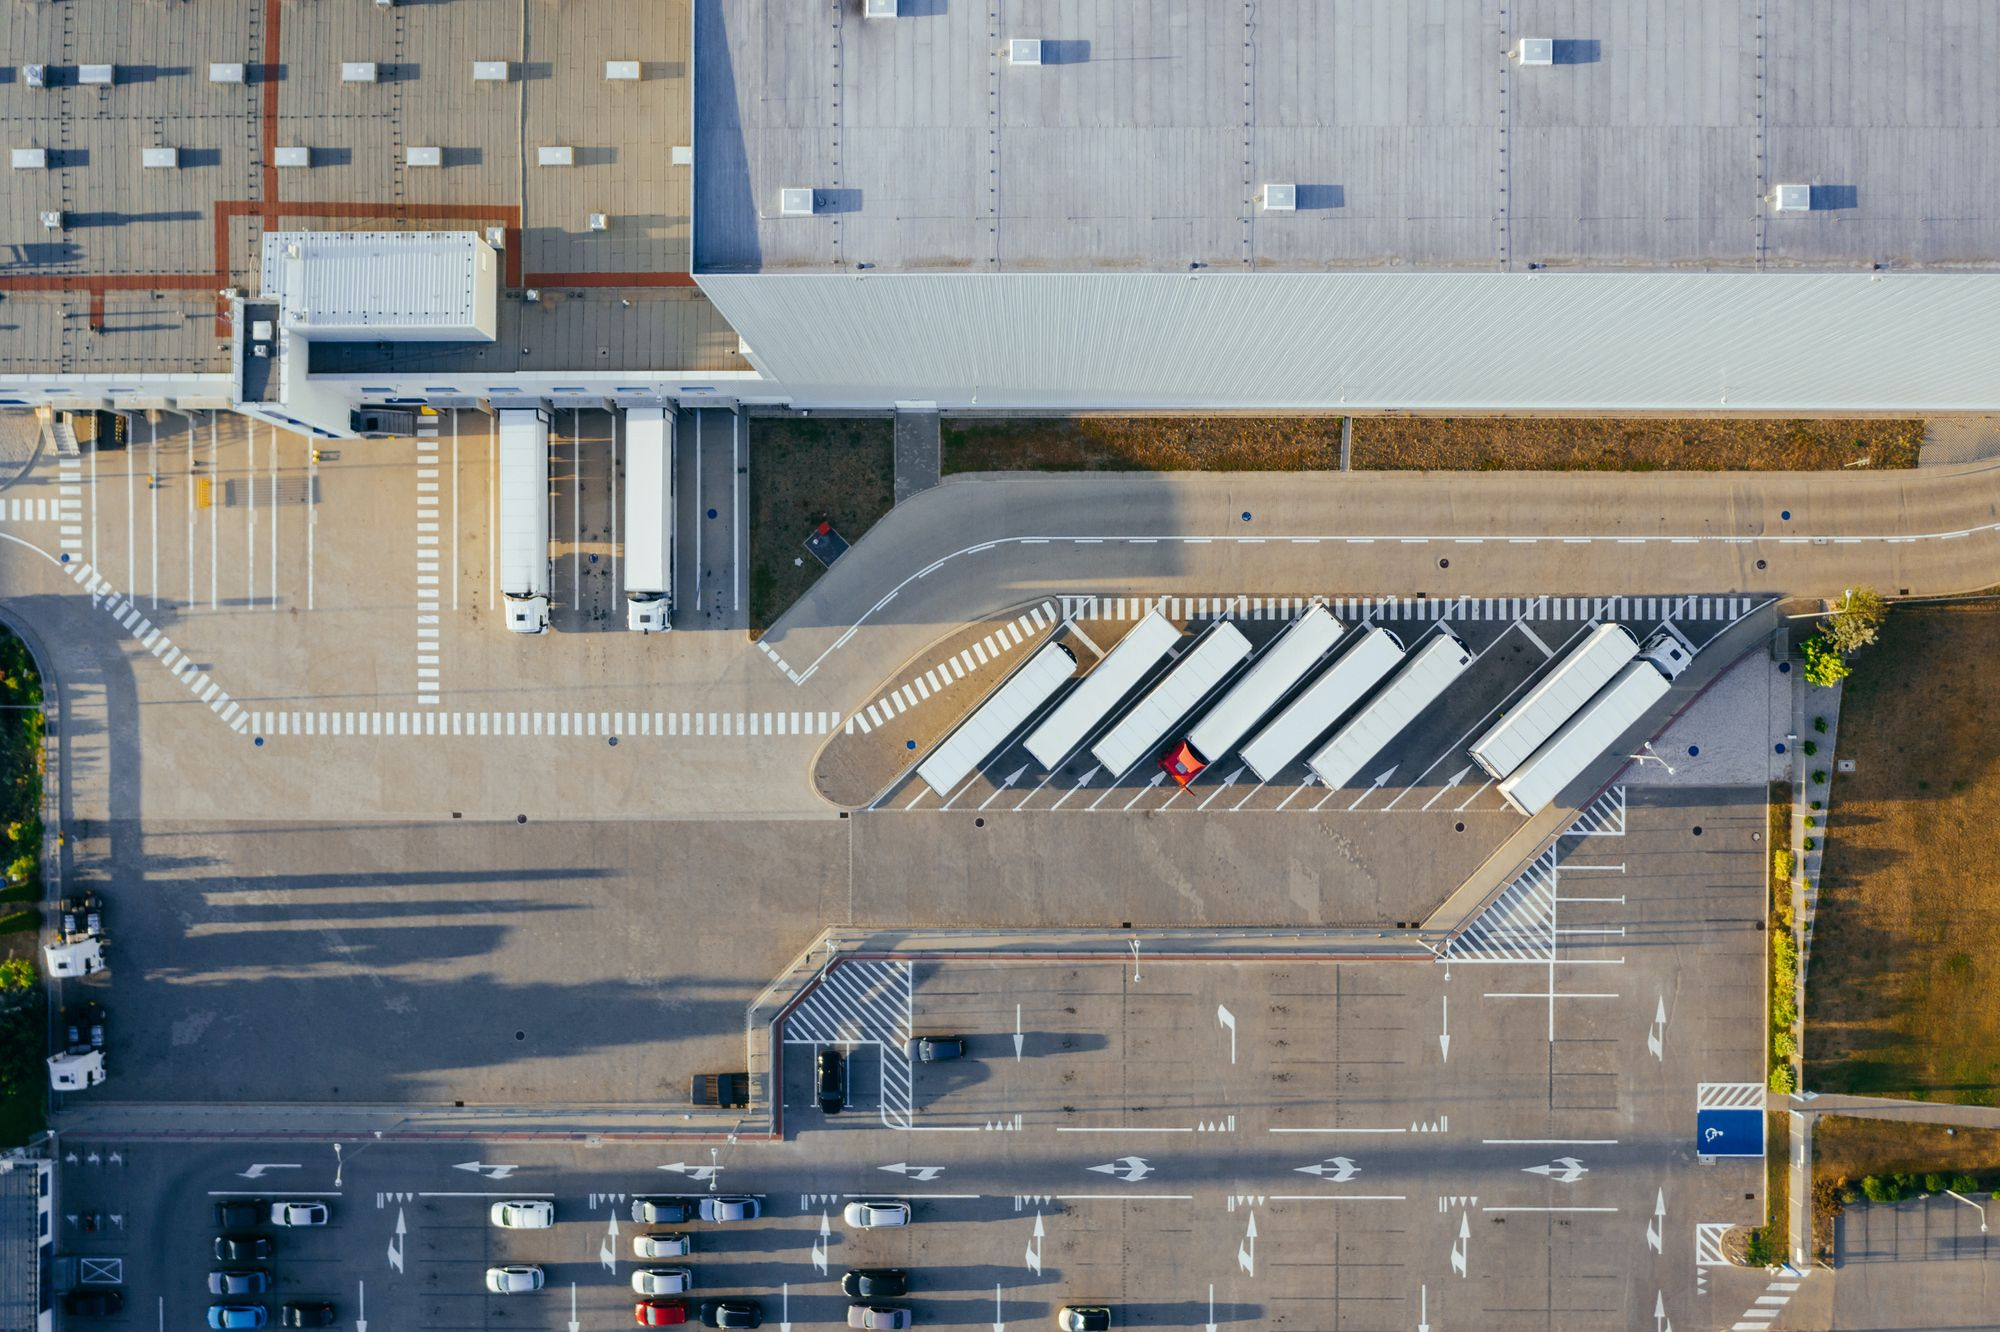 Warehouse aerial view